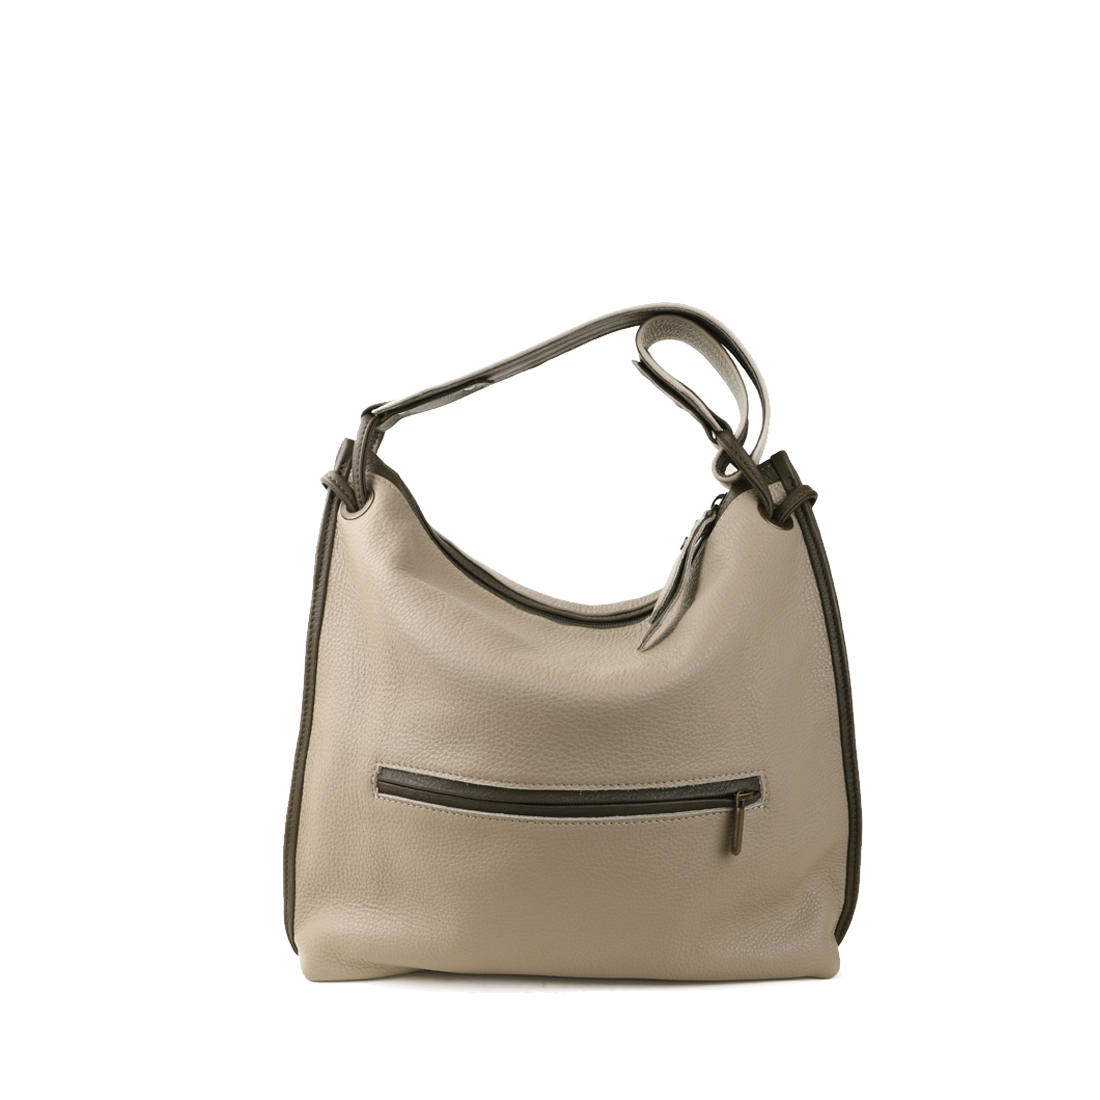 Maria Lino Leather Shoulder Bag